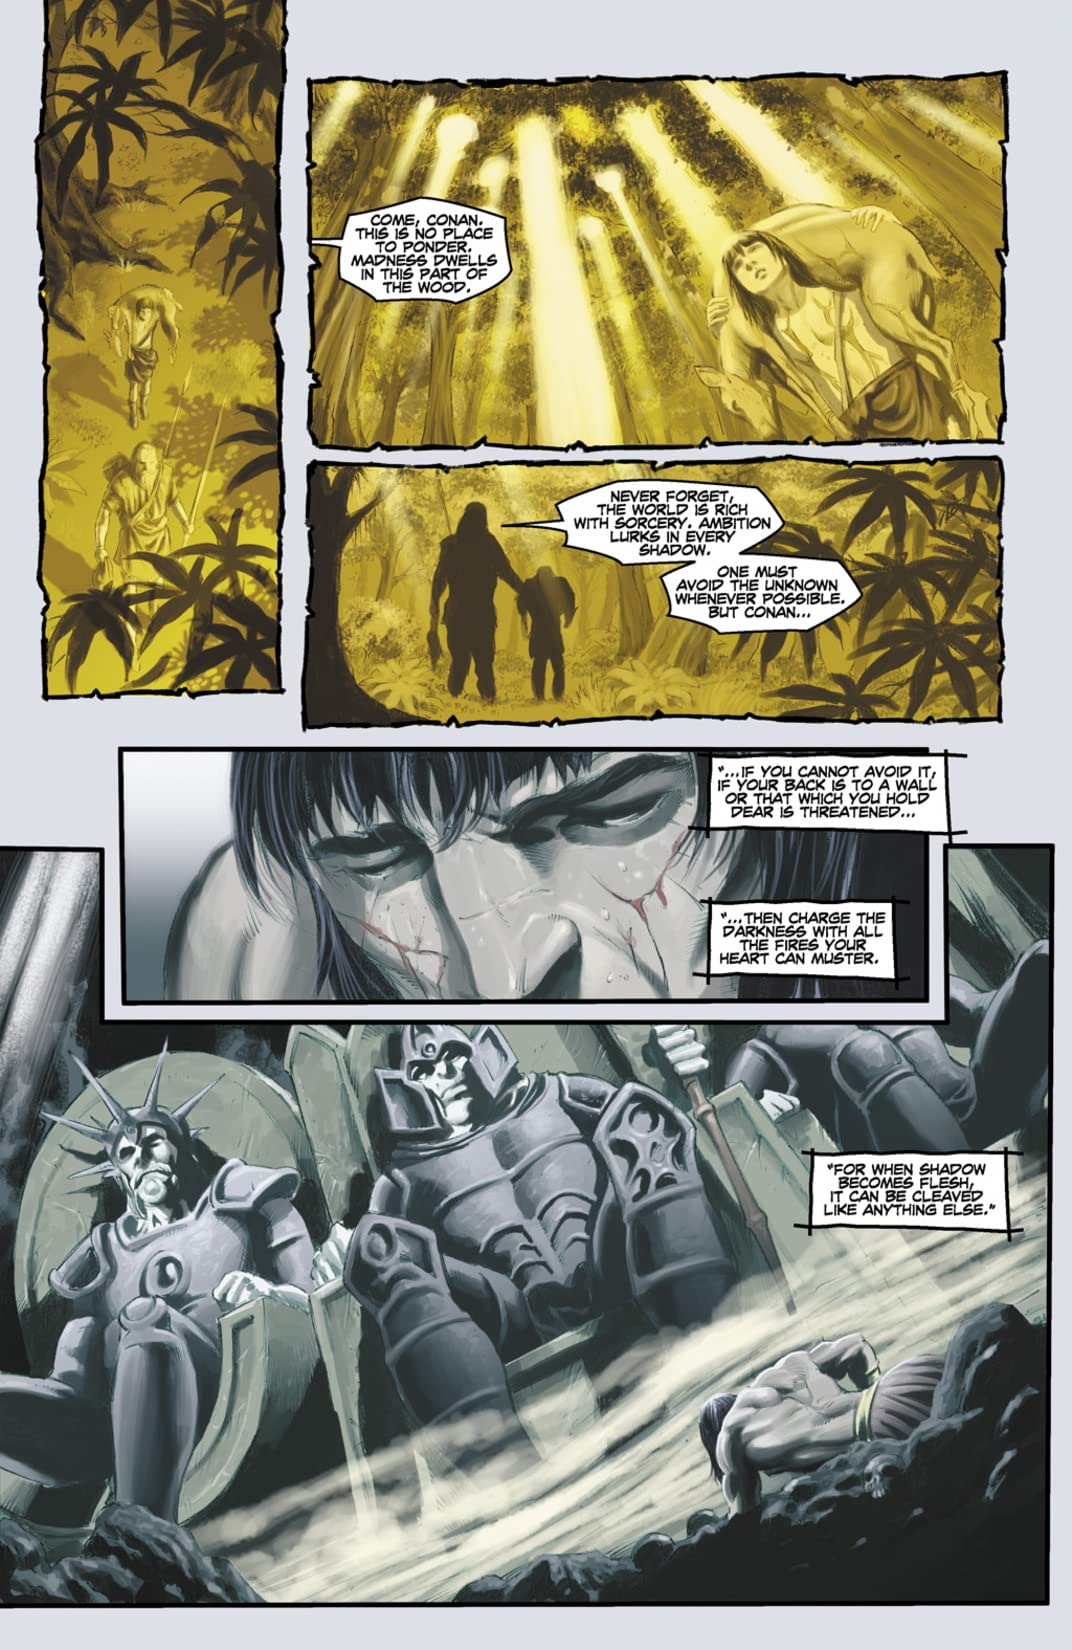 Conan and the Midnight God #5